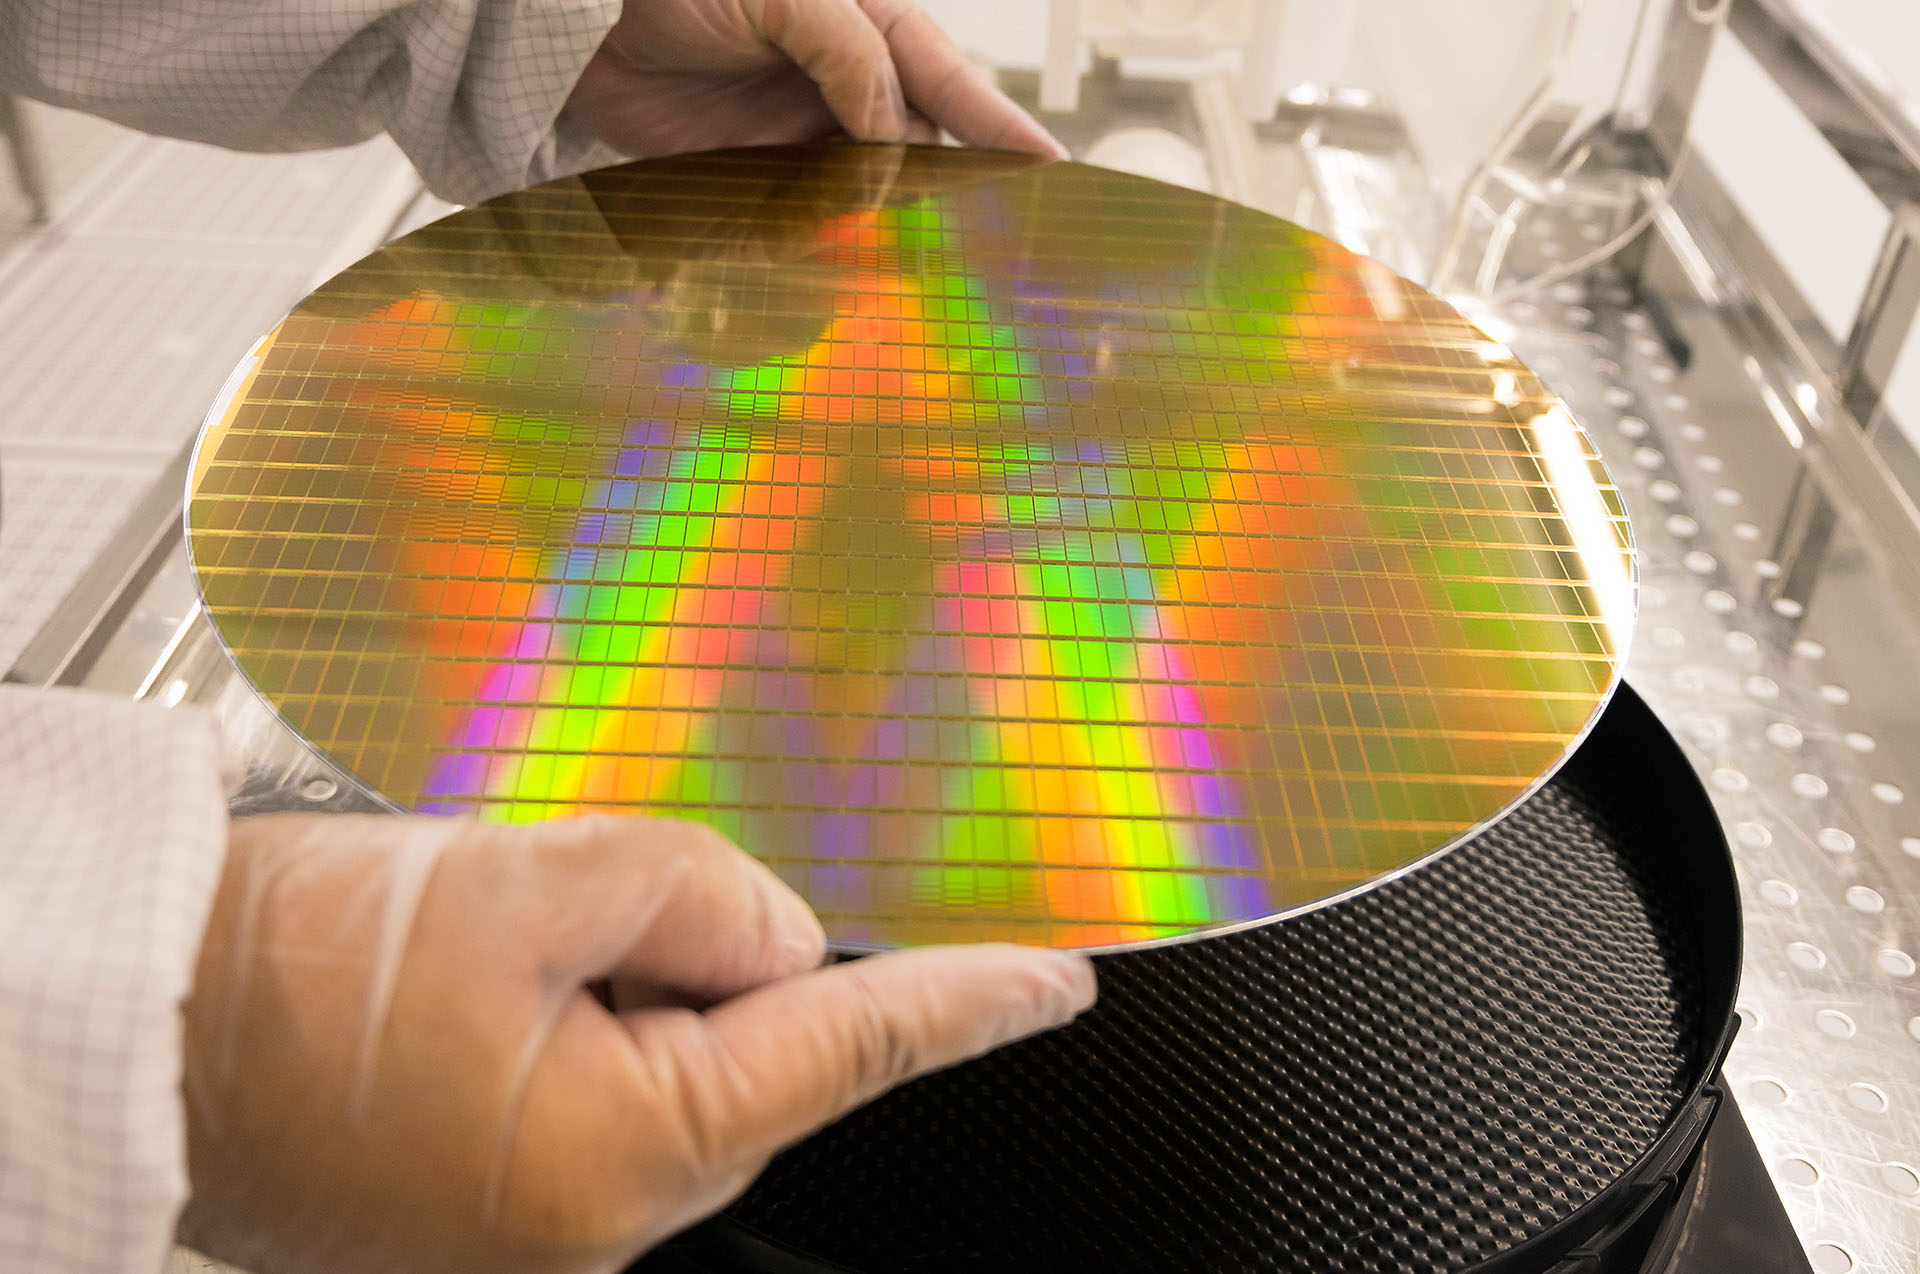 TSMC's True EUV Lithography Will Be On N5 Node For 2x